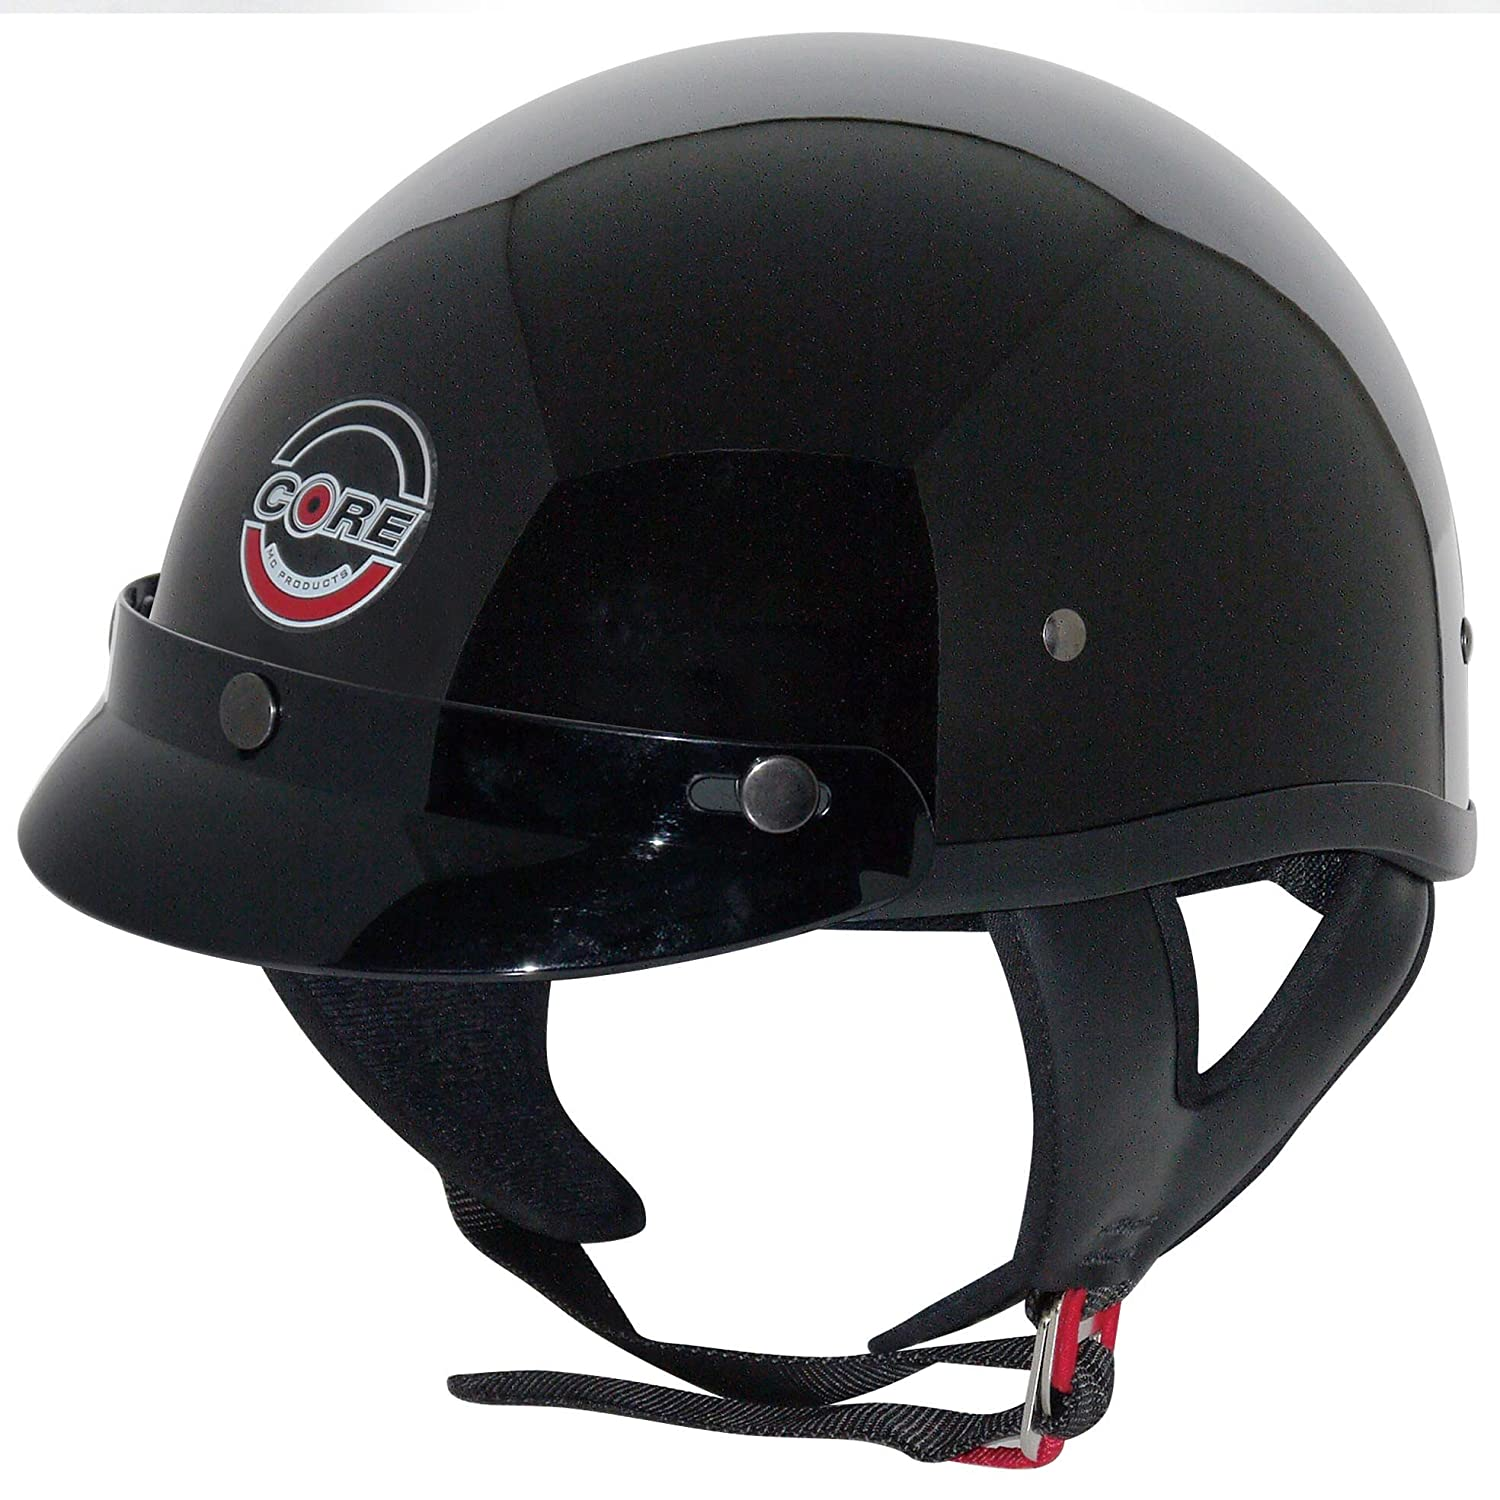 Core Cruiser Shorty Half Helmet